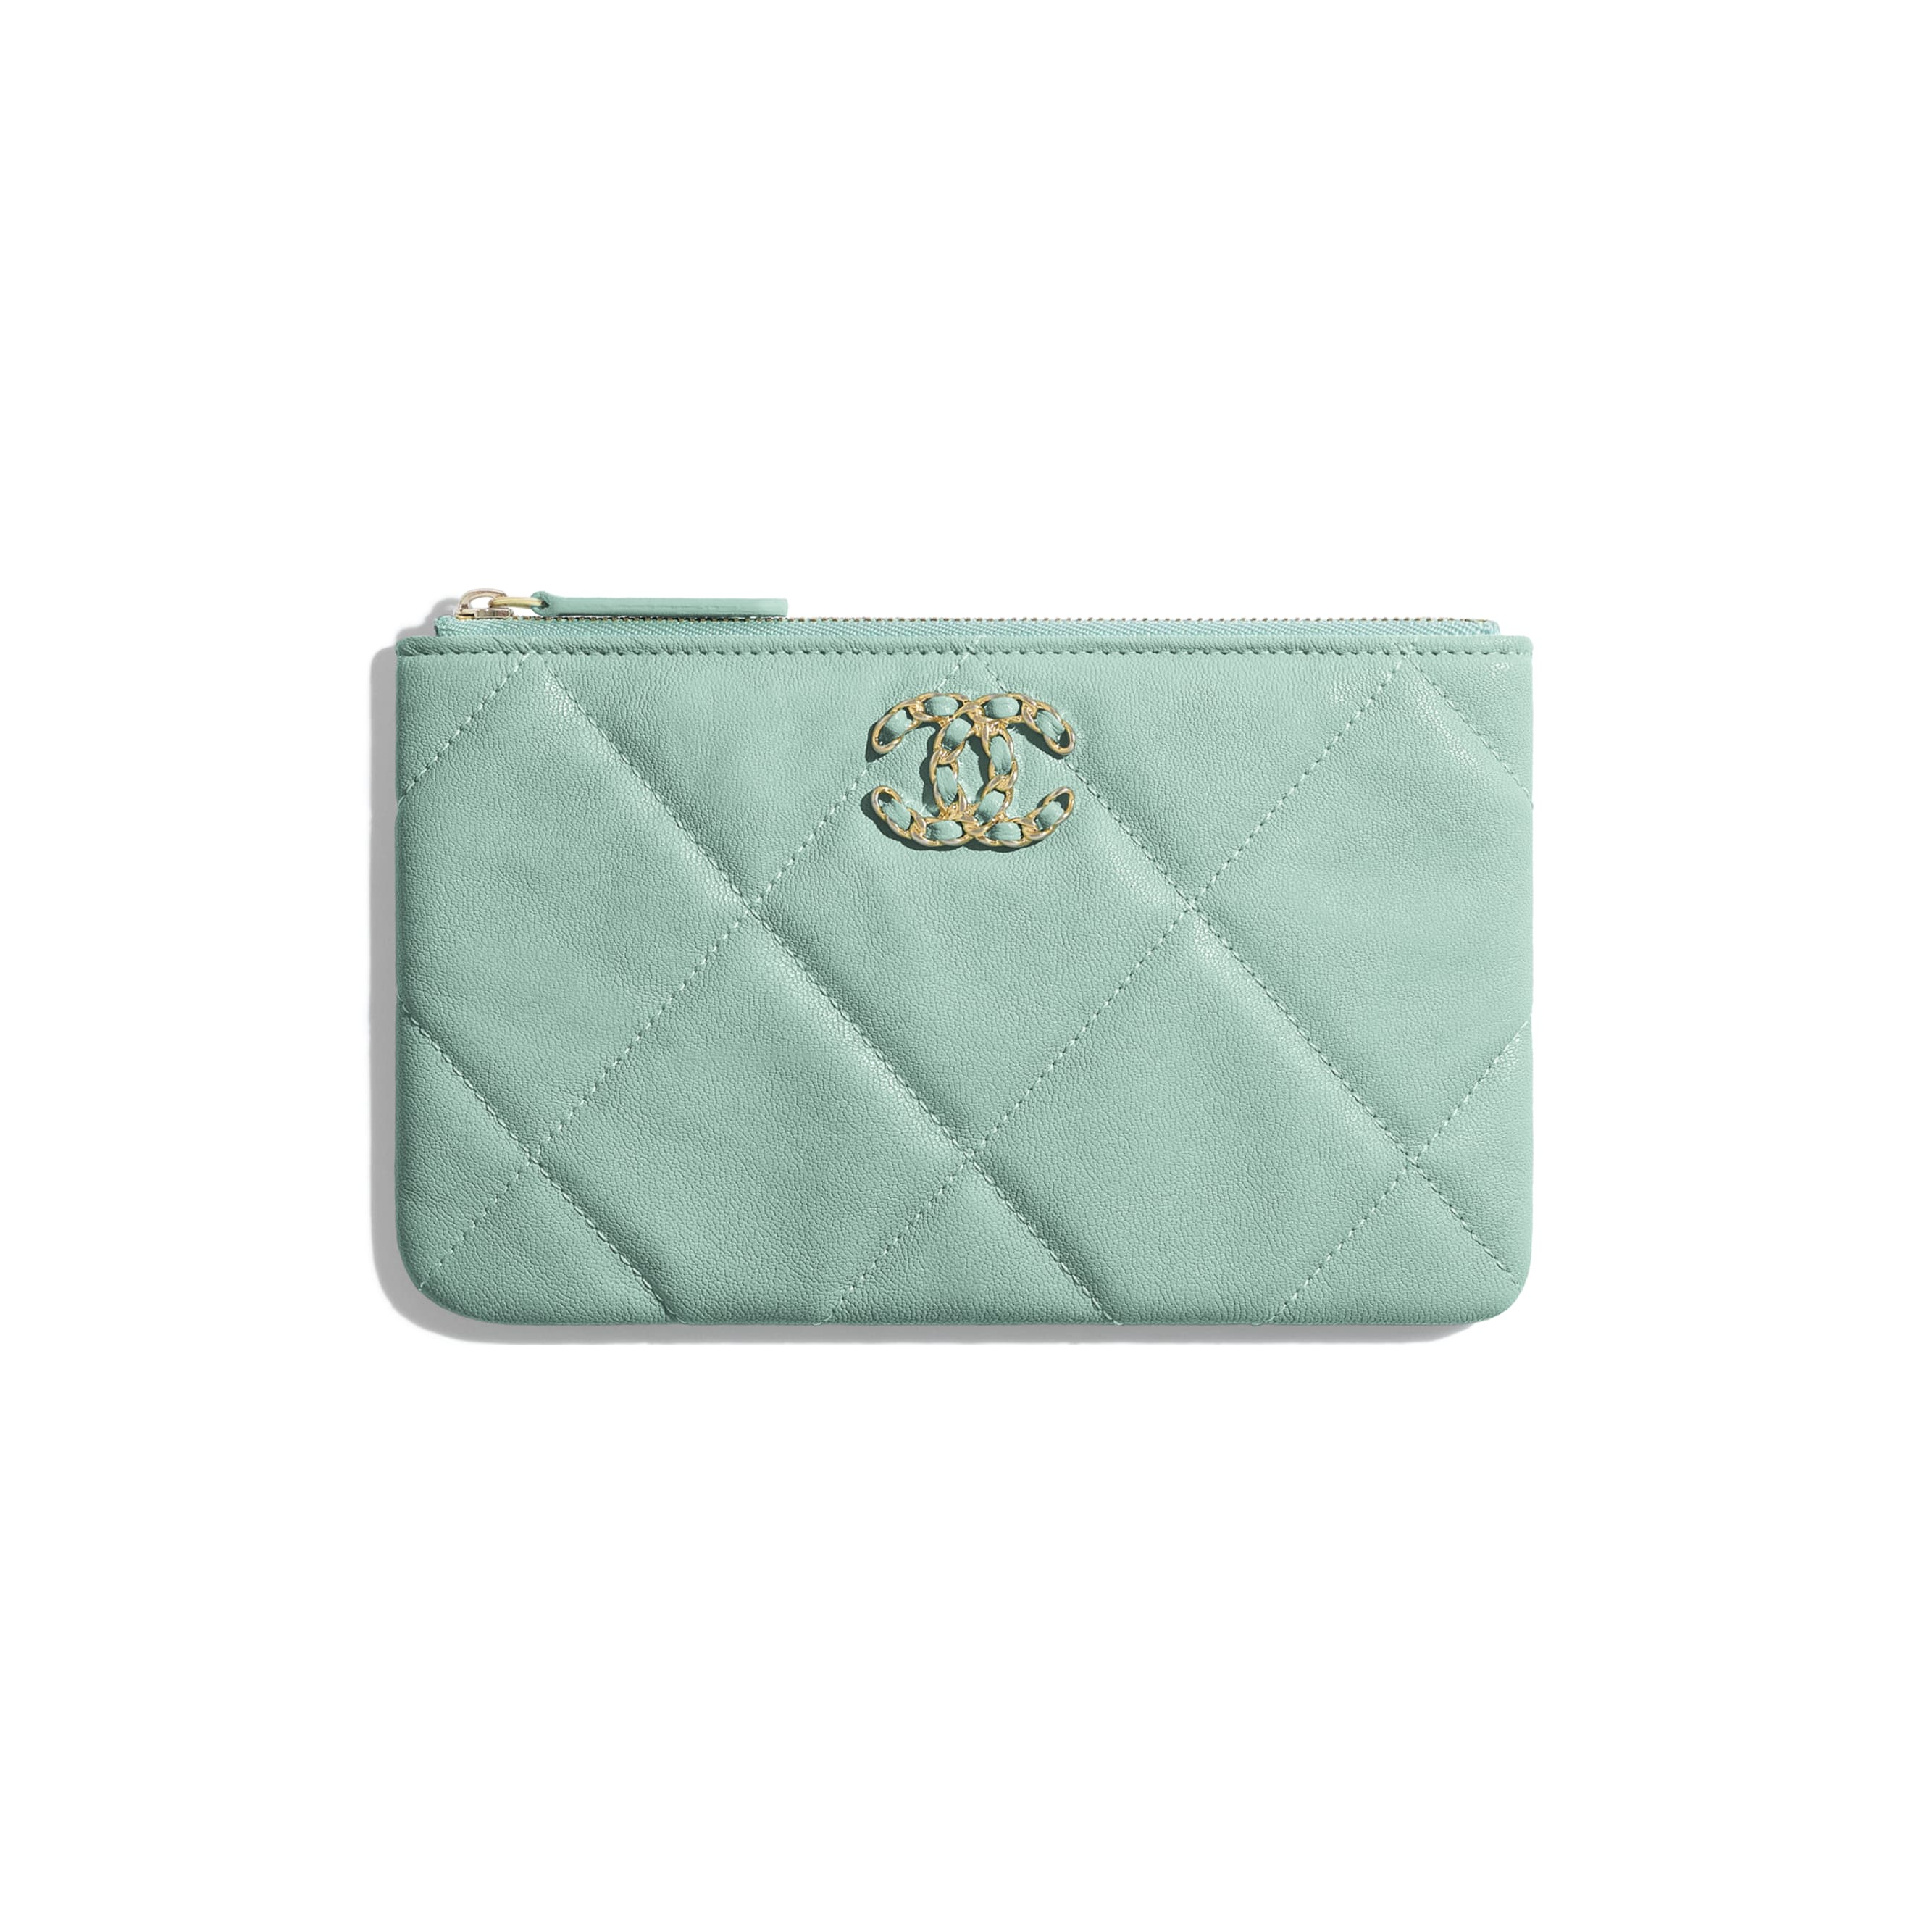 CHANEL 19 Small Pouch - Blue - Lambskin, Gold-Tone, Silver-Tone & Ruthenium-Finish Metal - Default view - see standard sized version